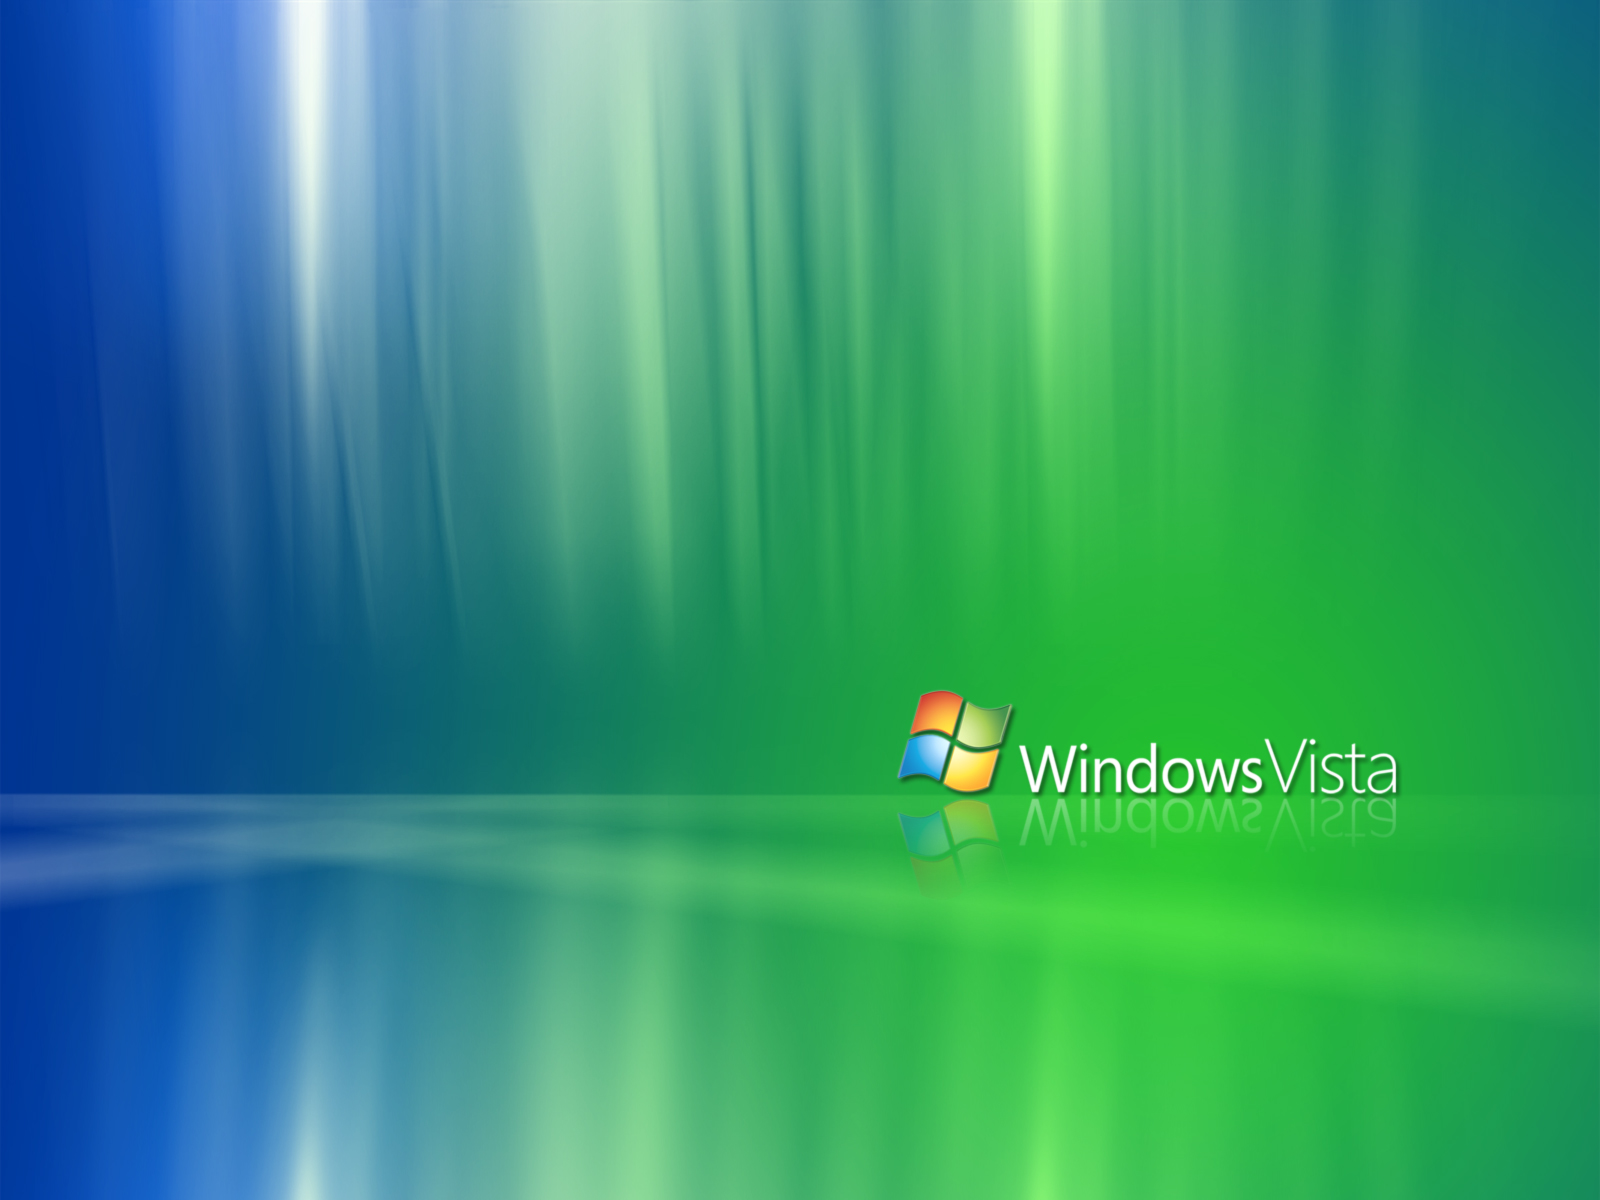 Wallpapers de Windows Vista   Taringa 1600x1200